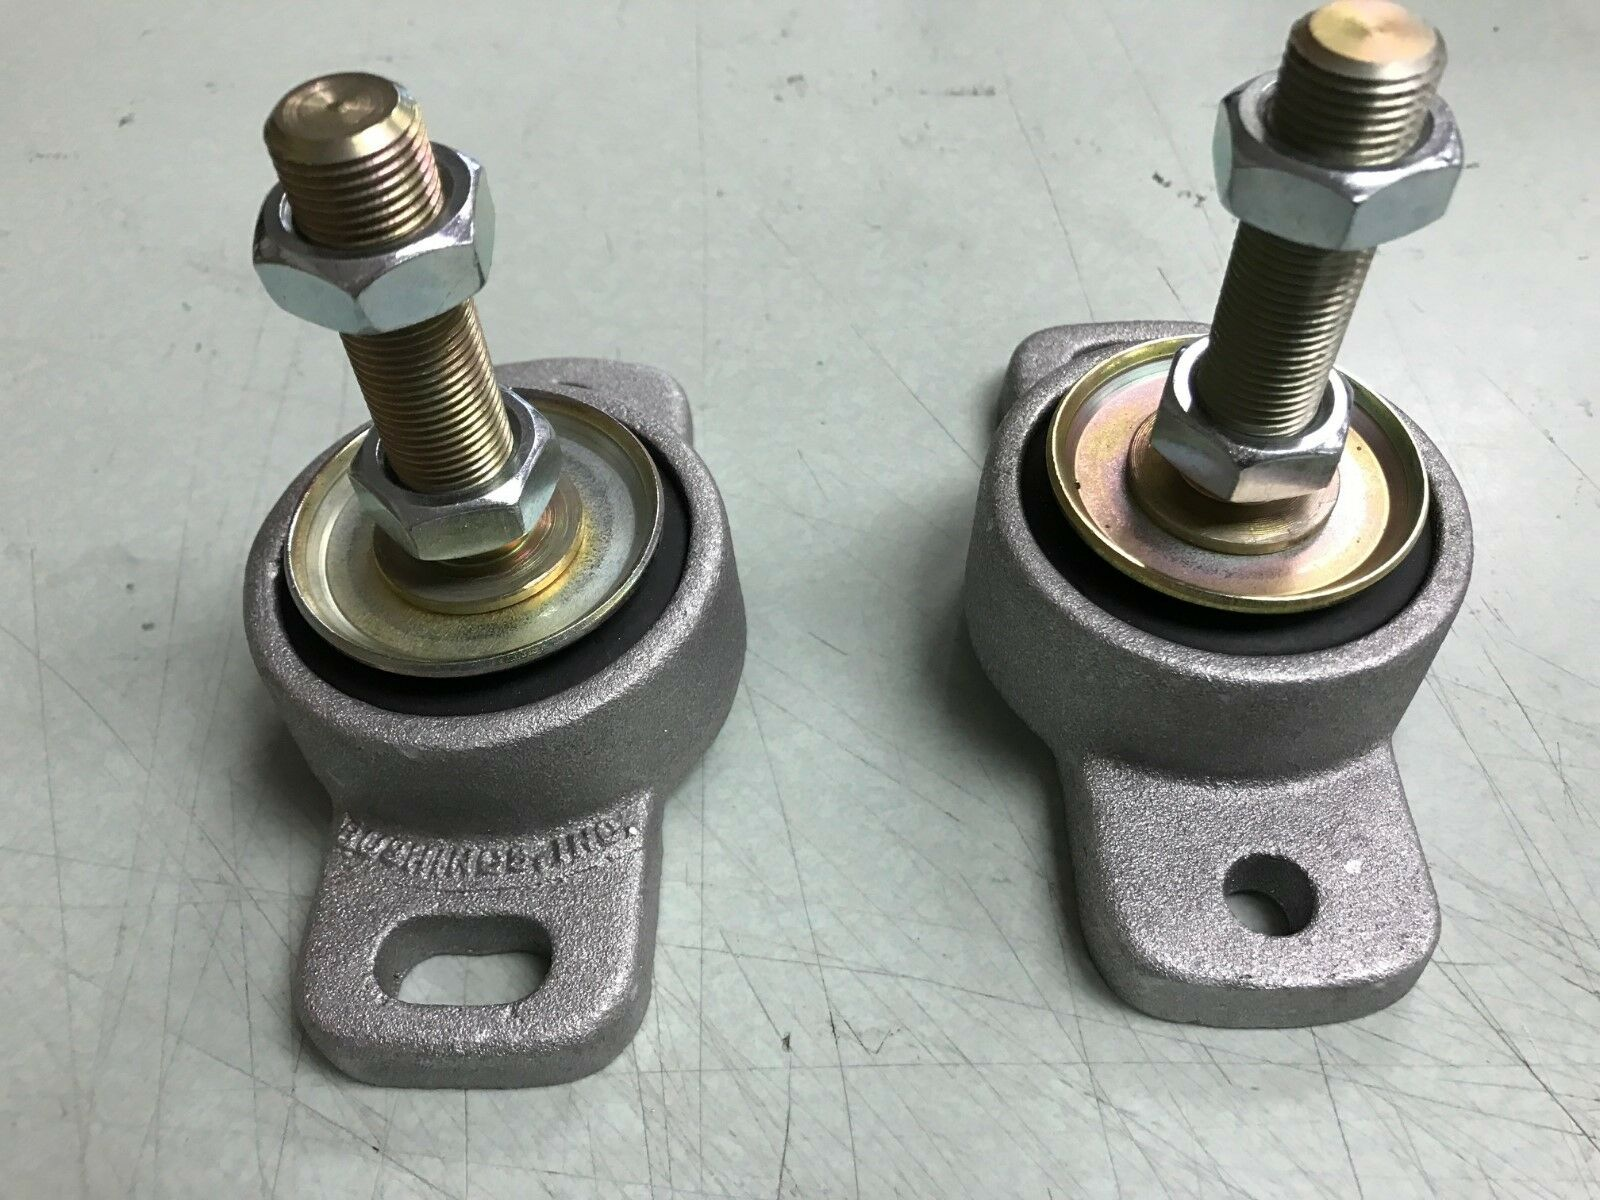 Inboard Engine Motor Mounts Df100 Pair Marine Boat Mount Omc Wiring Harness Parts Ebay Boatingmall 1 Of 3